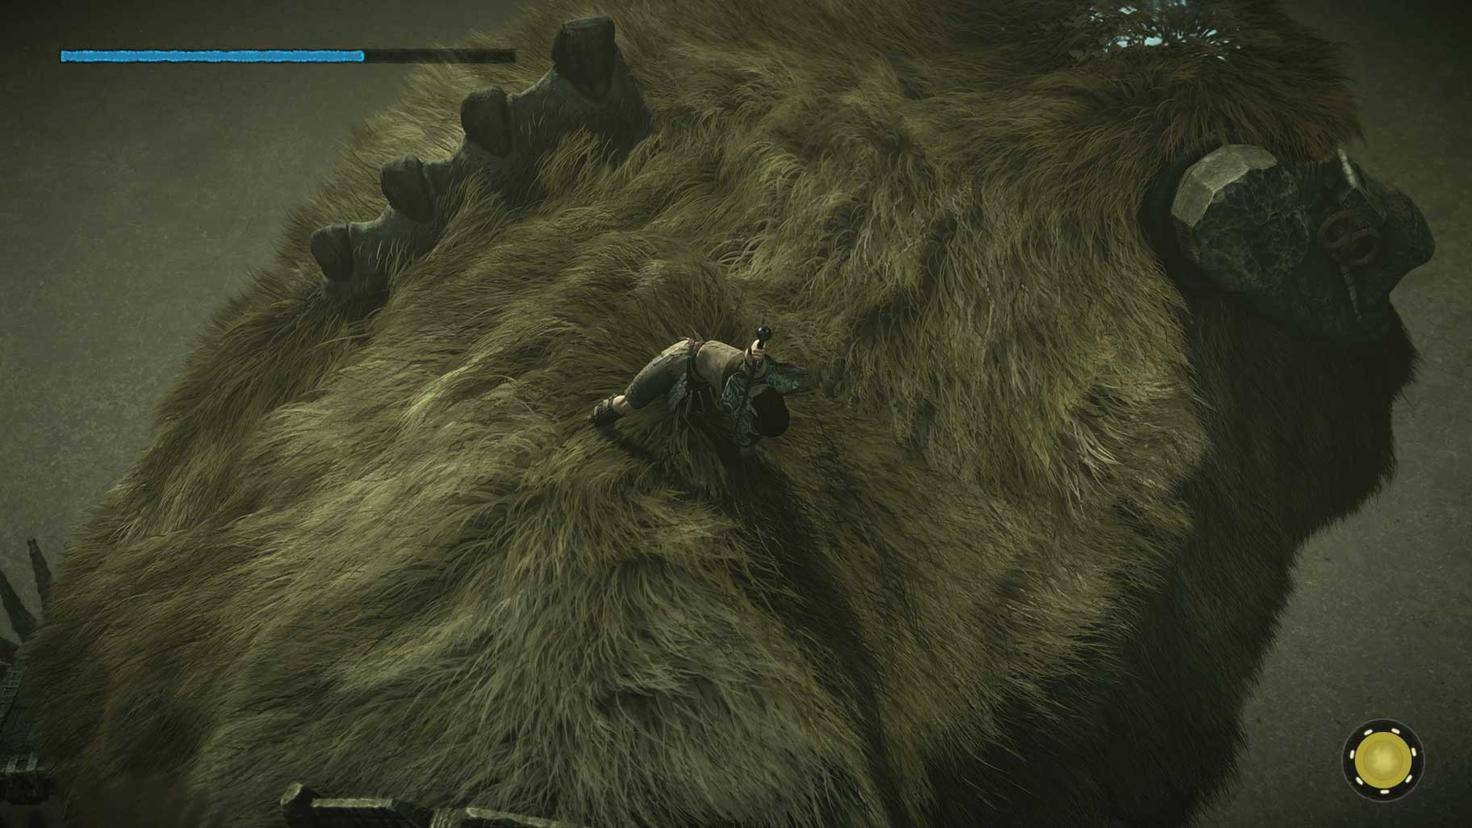 shadow-of-the-colossus-ps4-screenshot-06